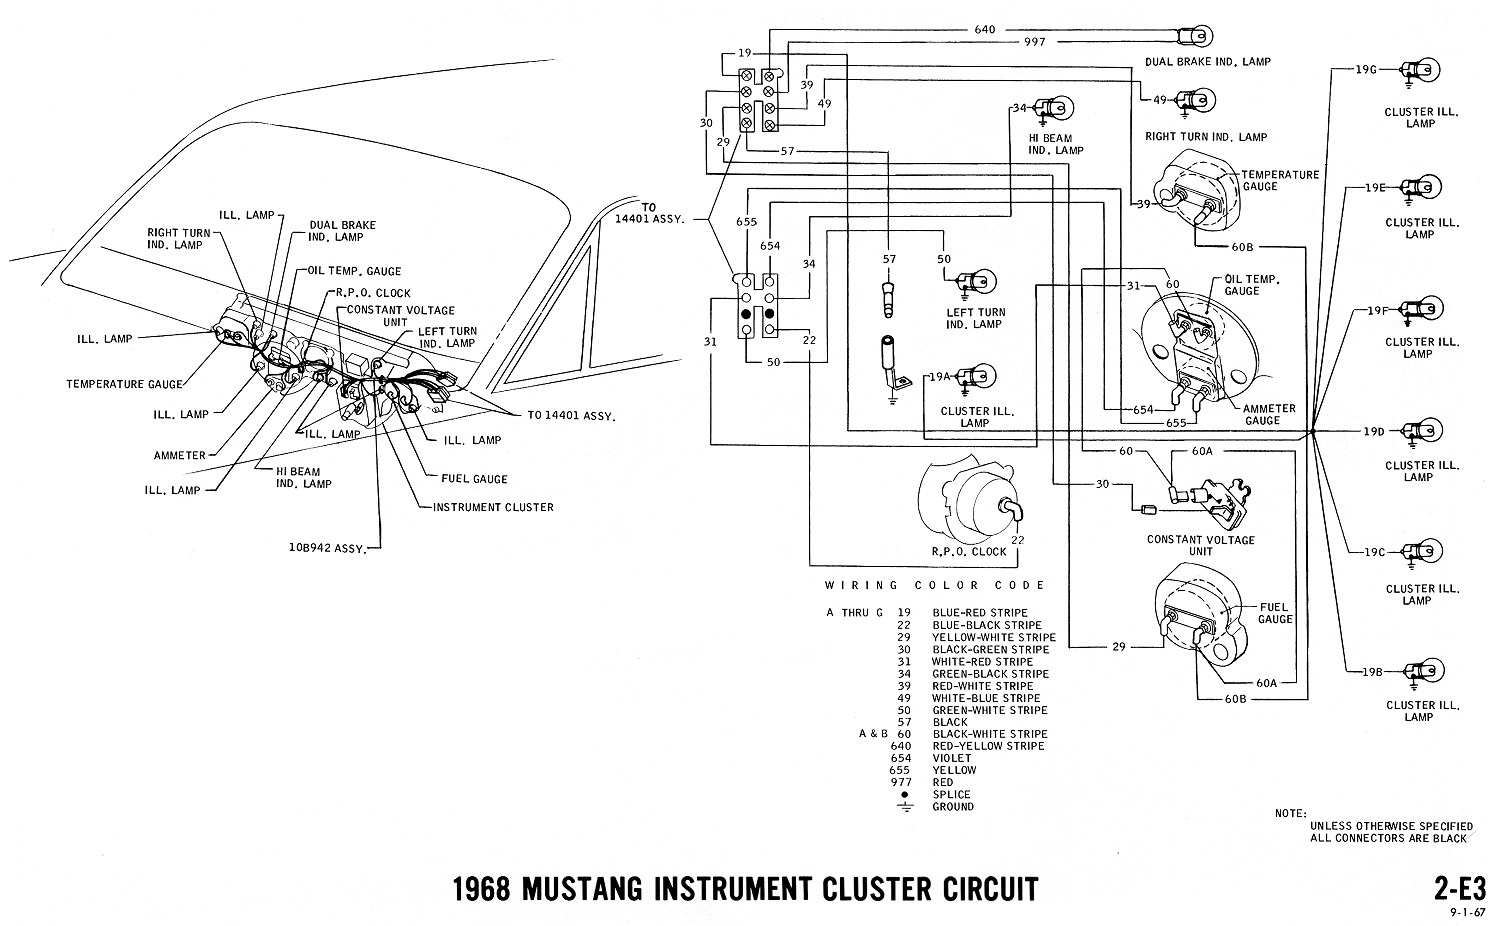 1968 mustang wiring diagram instruments 67 mustang wiring diagram on 67 download wirning diagrams 1967 mustang ignition switch wiring diagram at nearapp.co